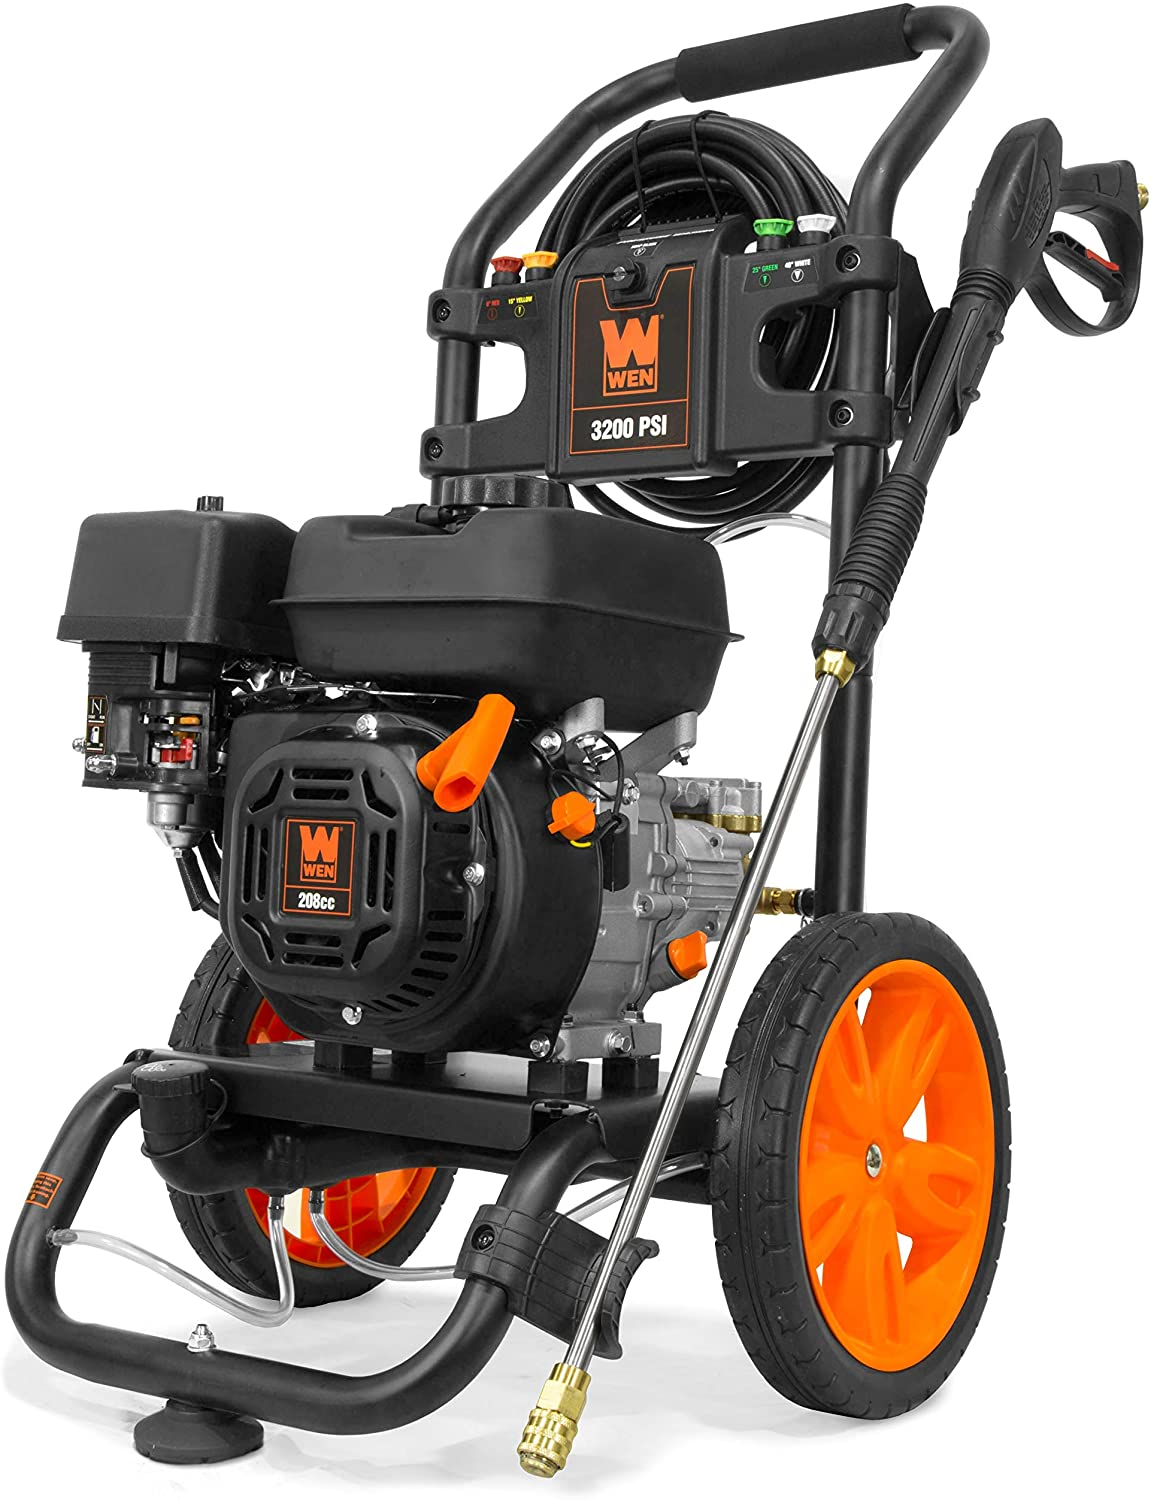 WEN PW3200 Gas-Powered 3200 PSI 208cc Pressure Washer, CARB Compliant